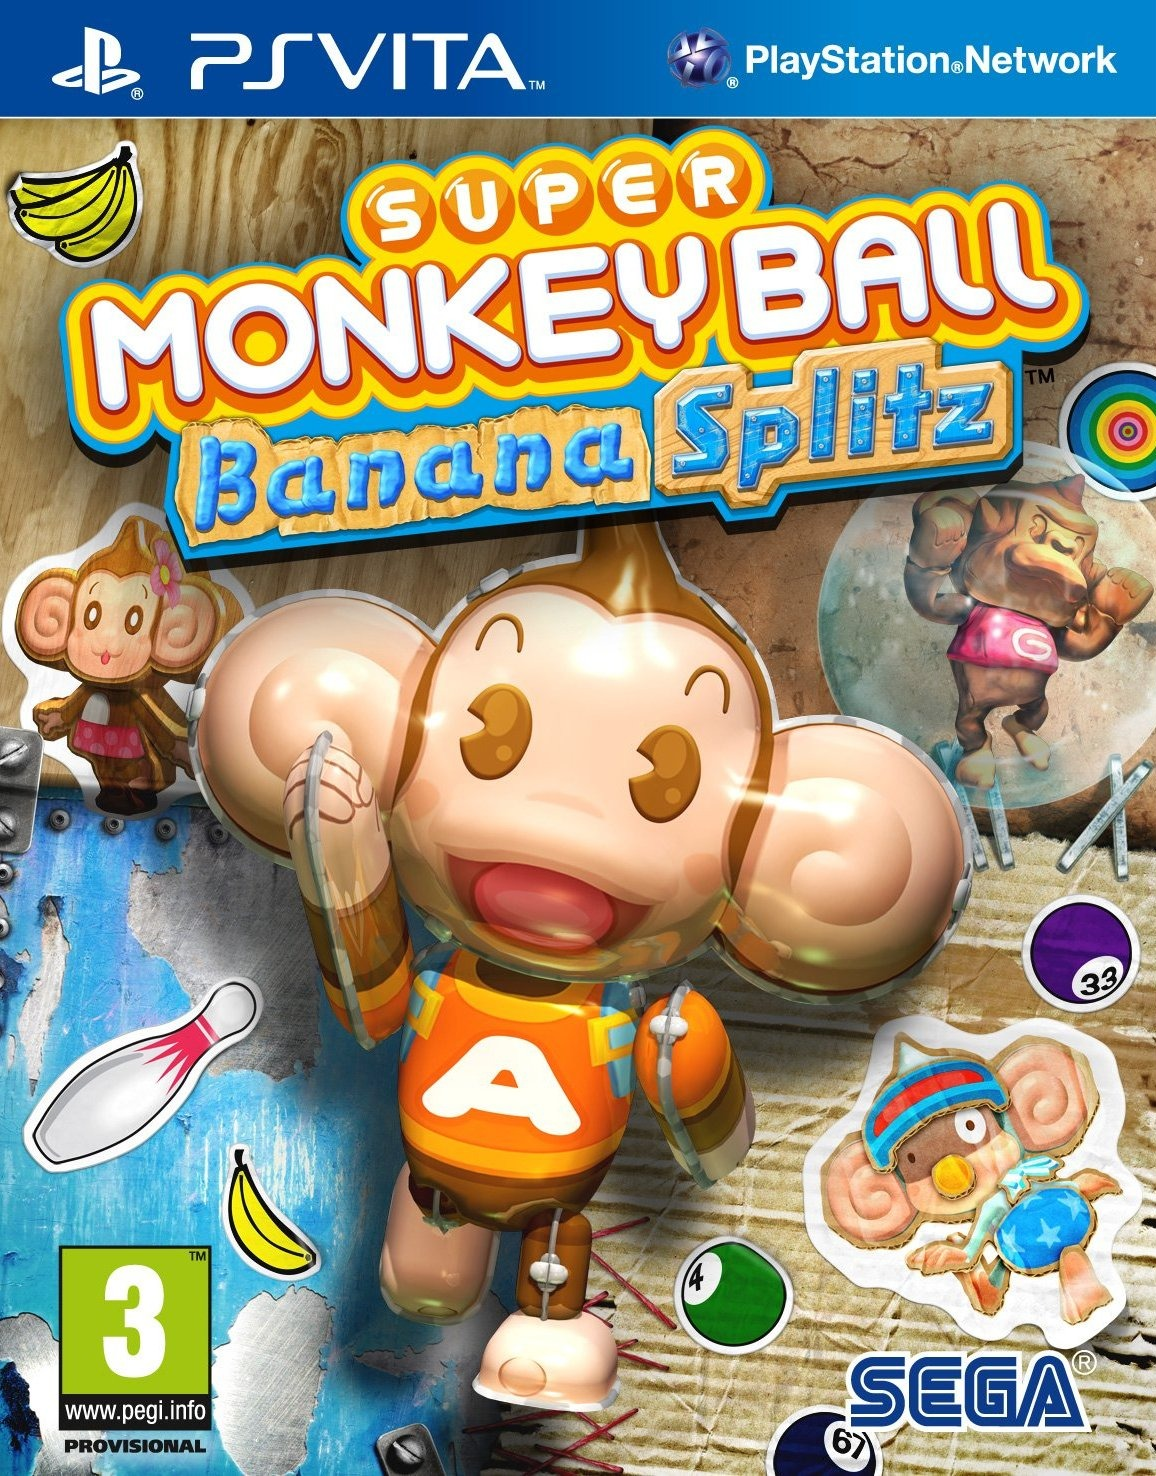 jaquette-super-monkey-ball-banana-splitz-playstation-vita-cover-avant-g-1332343006.jpg